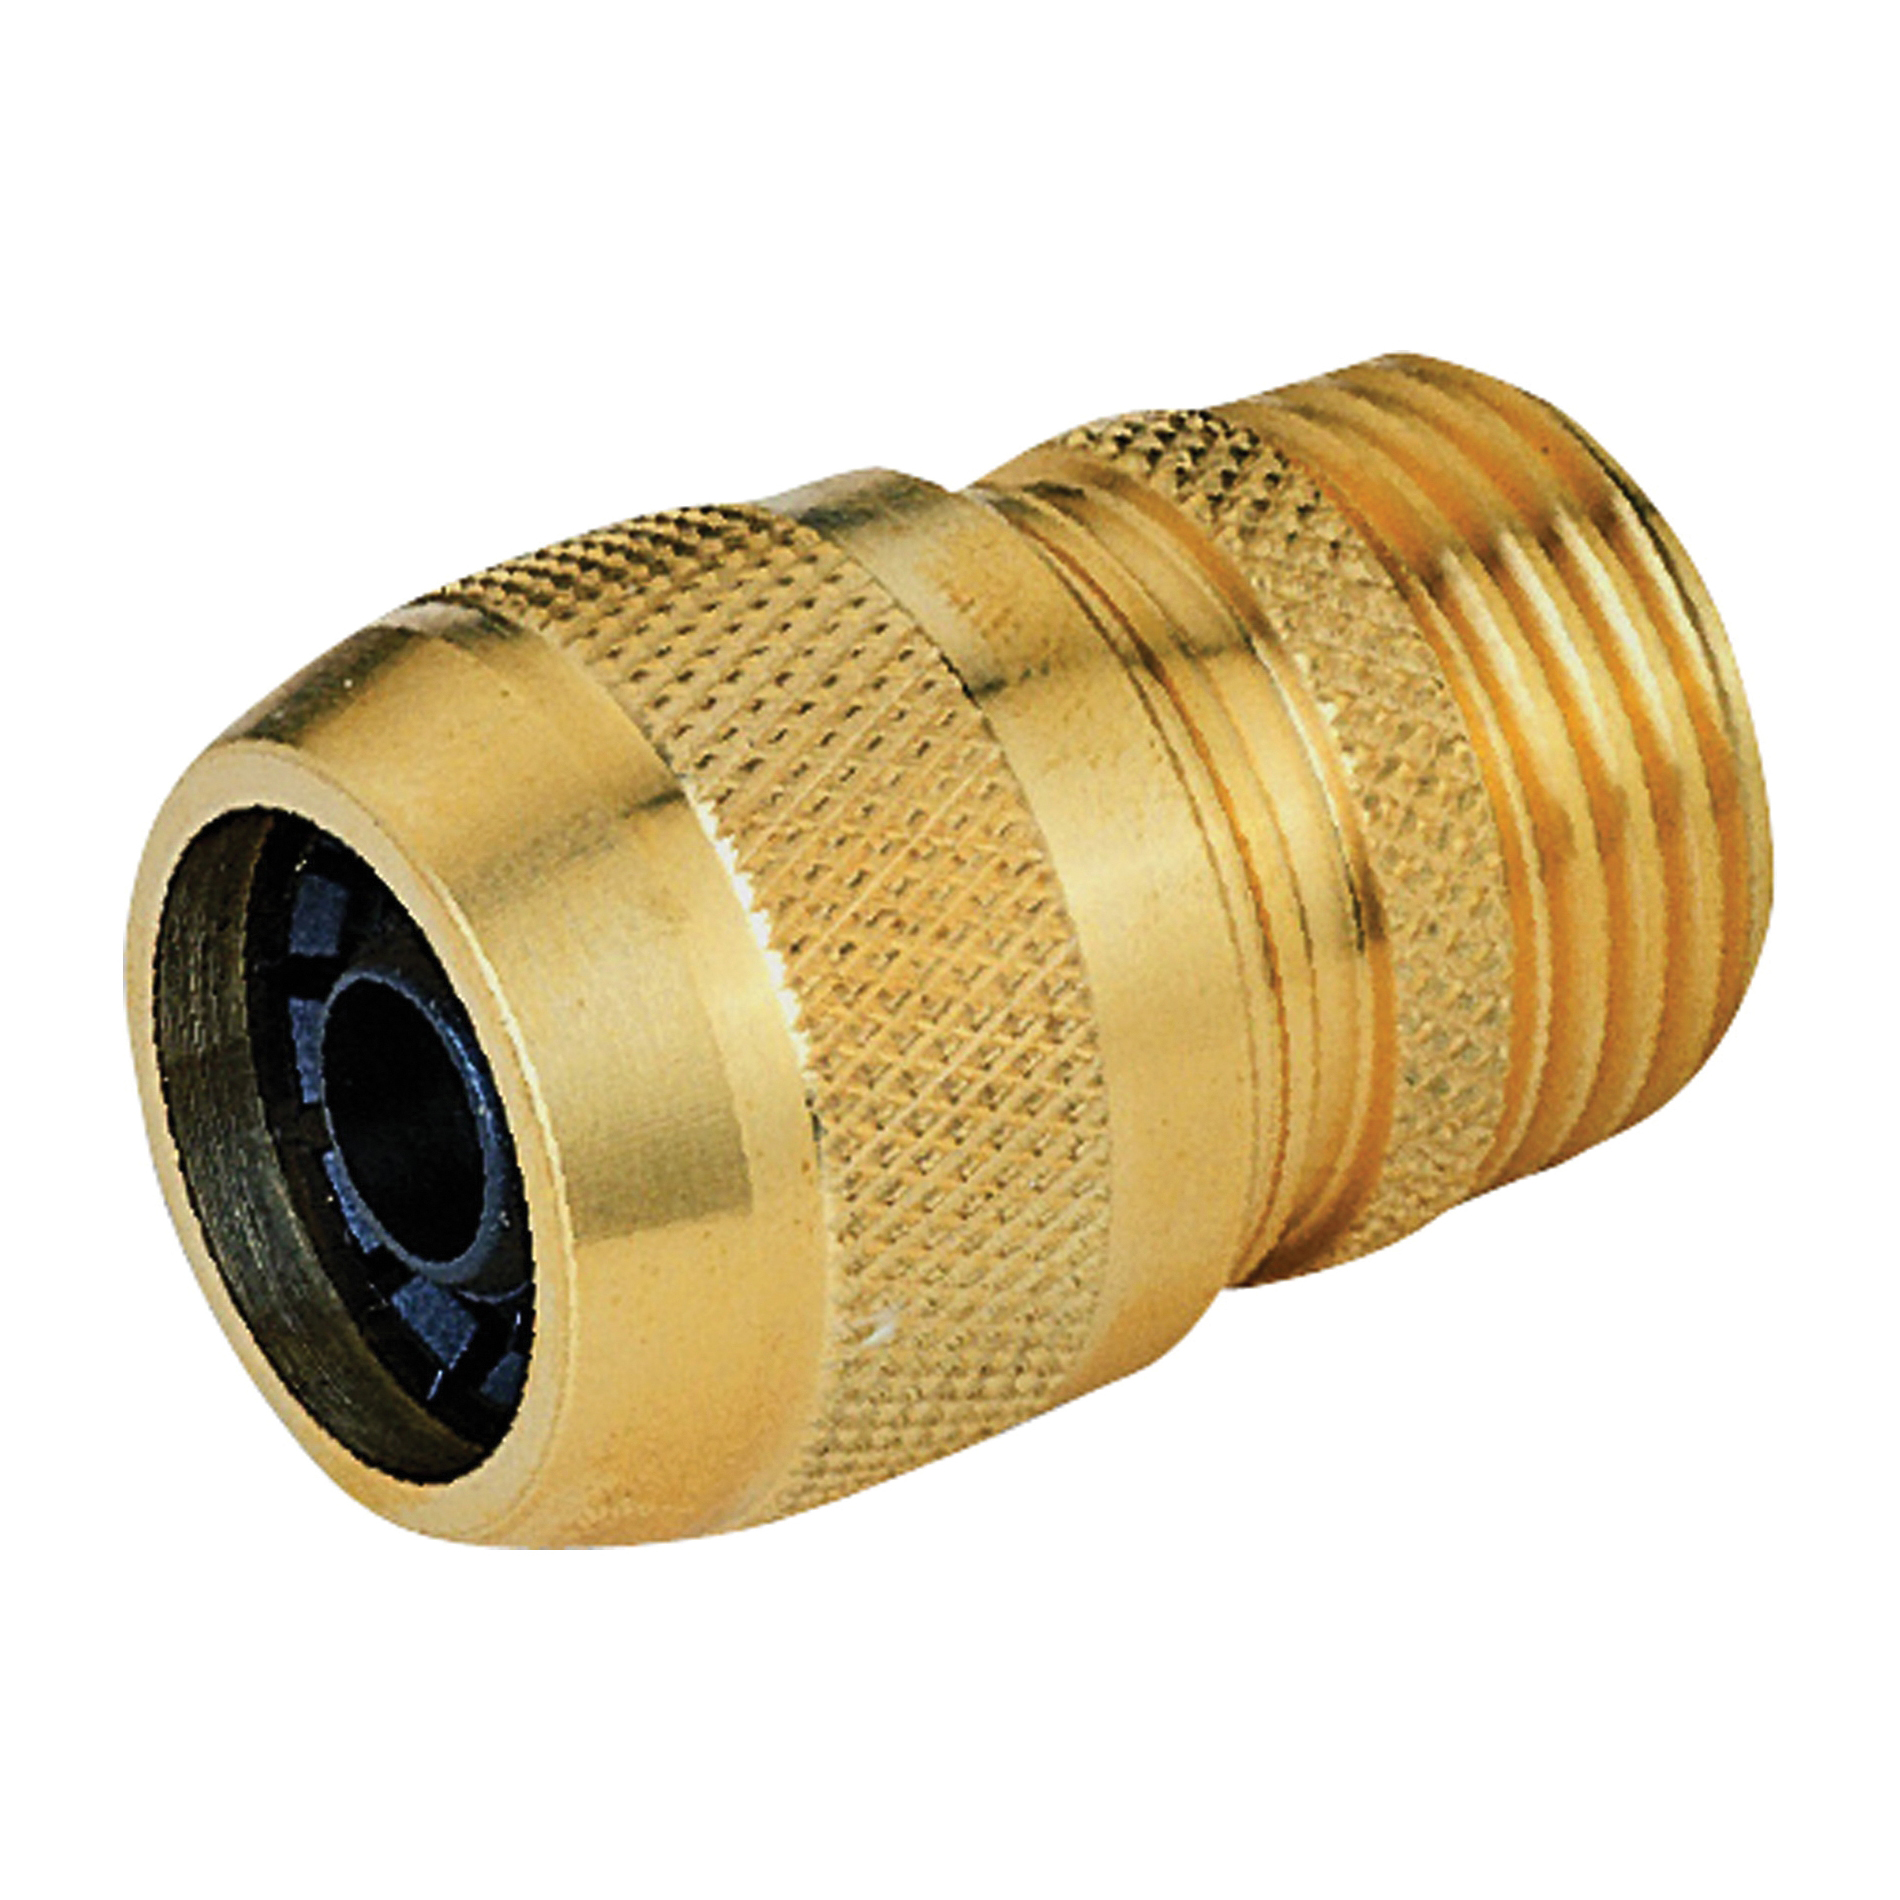 Picture of Landscapers Select GB8123-1(GB9210) Hose Coupling, 5/8 in, Male, Brass, Brass